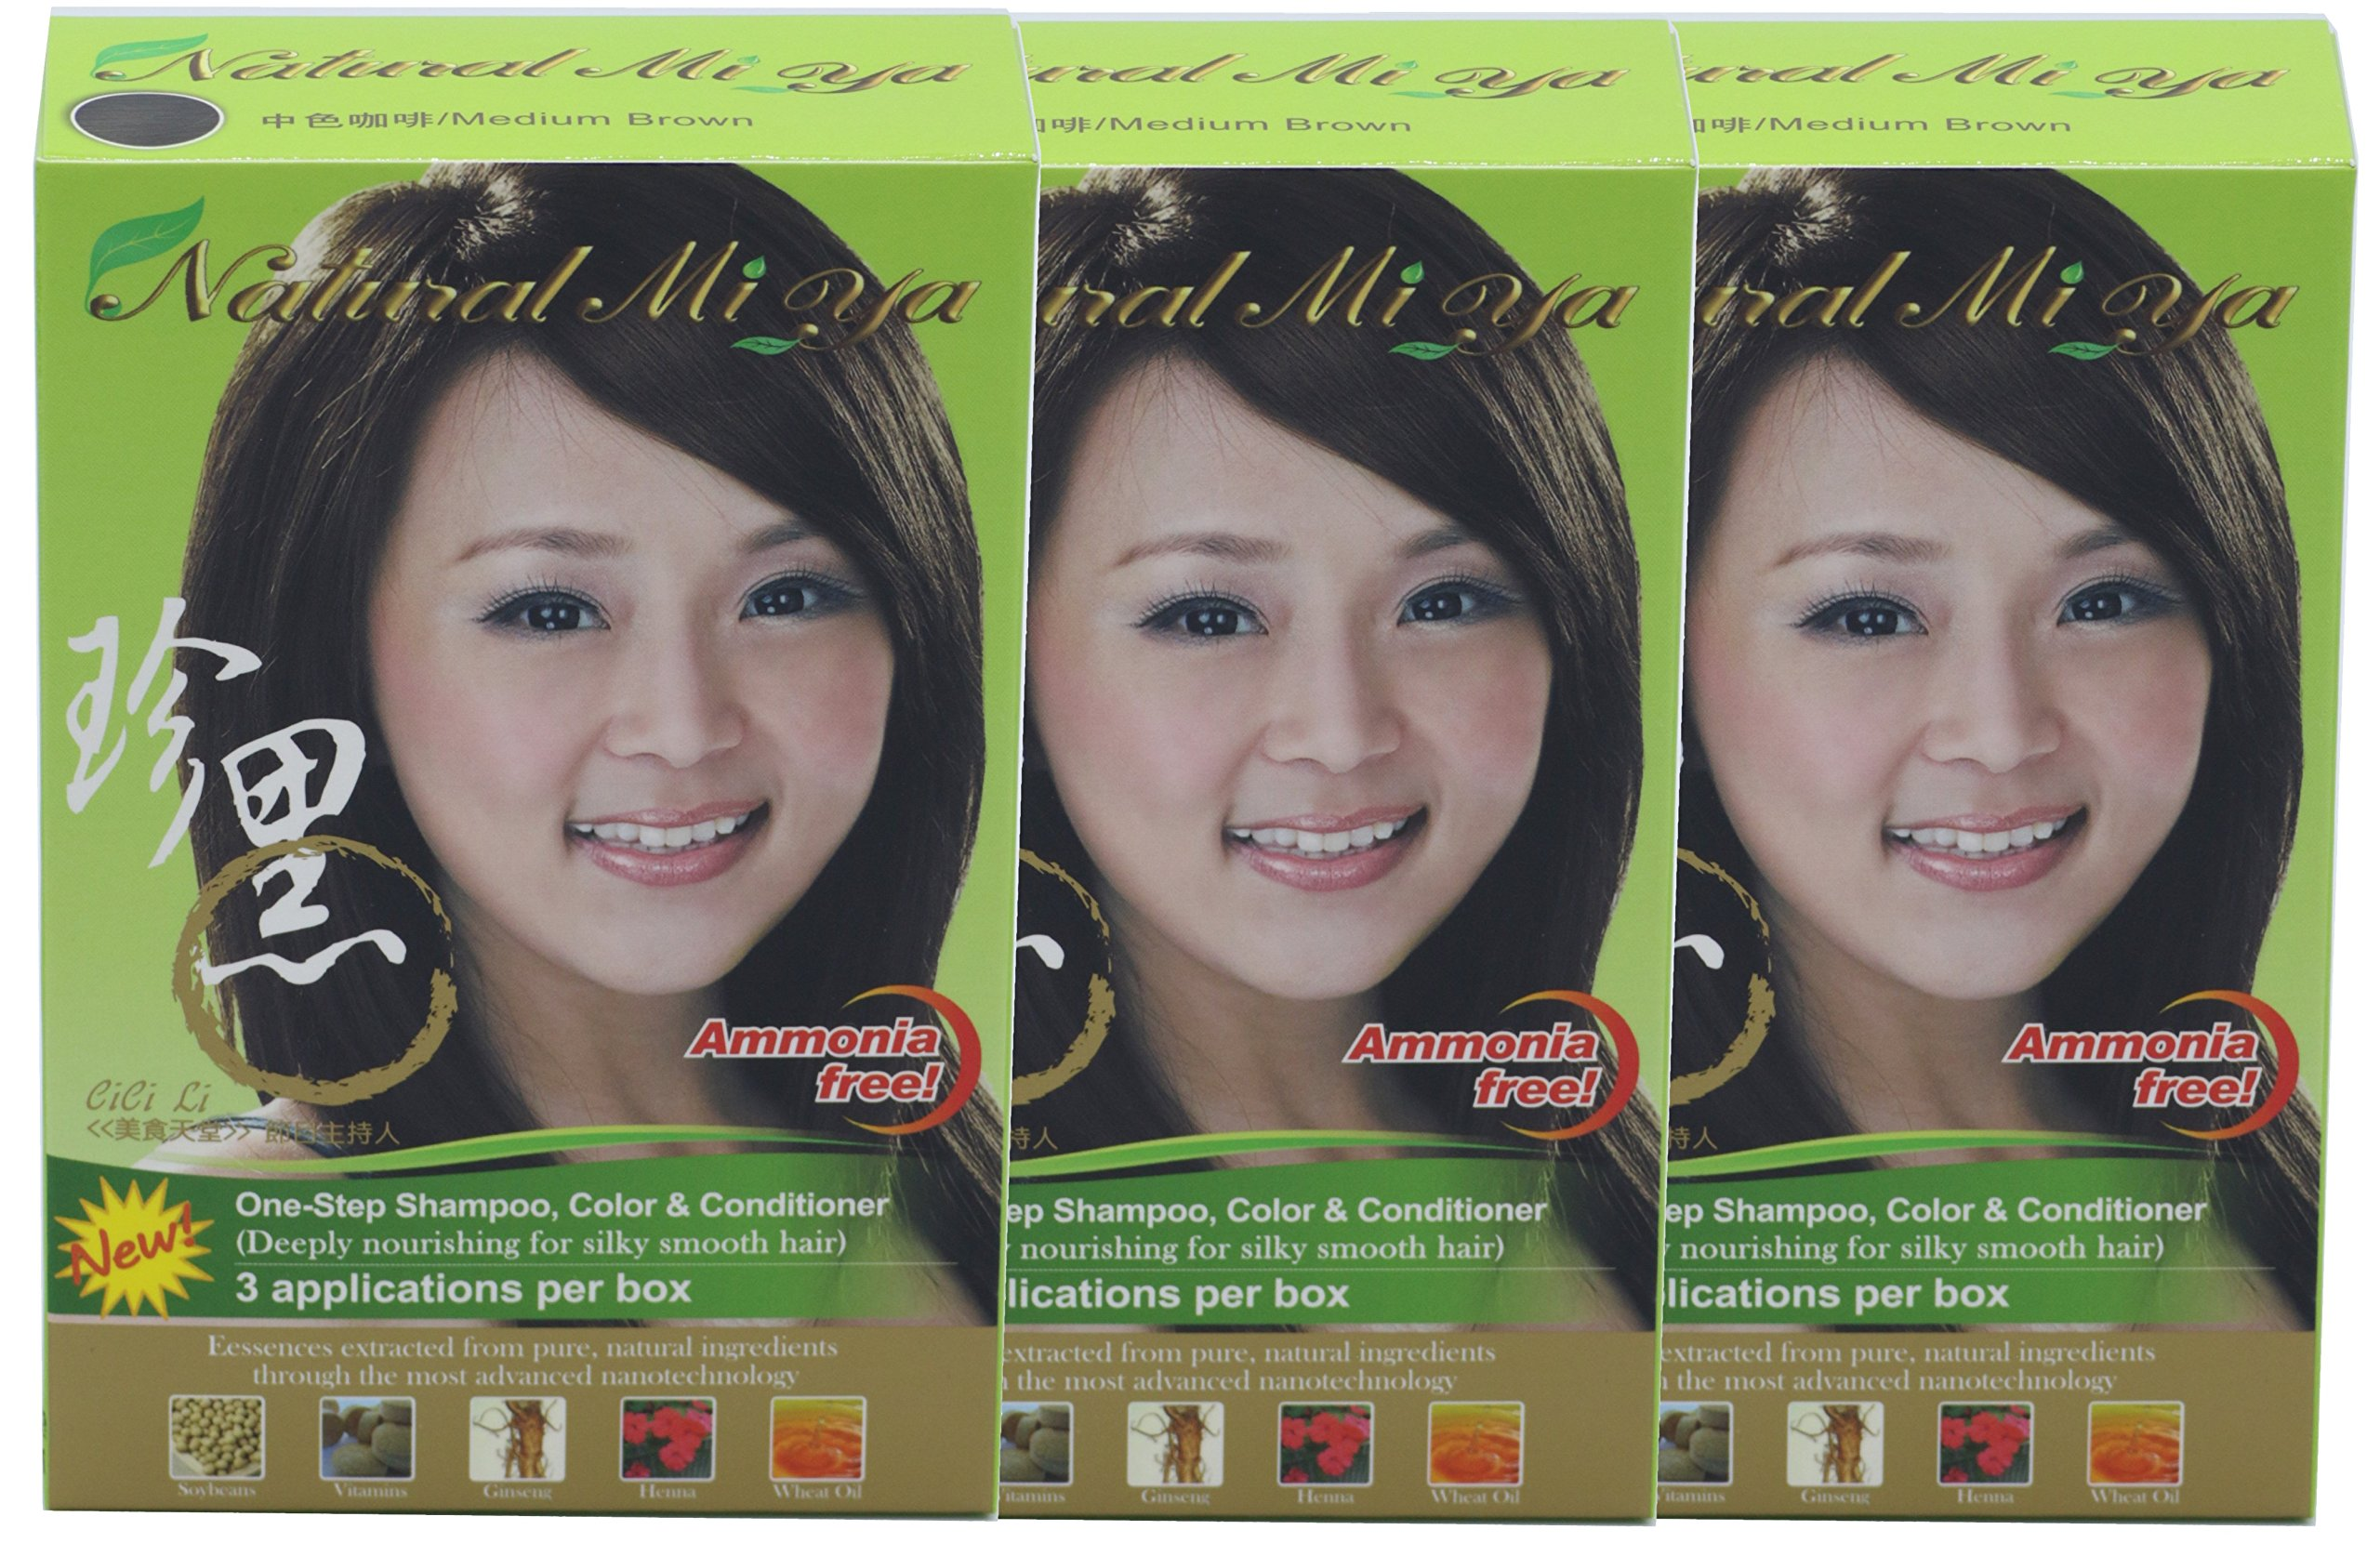 Natural Mi Ya Hair Color, Herbal Hair Dye & Hair Nutritions by Extracted Ginseng,Henna Hair Color Colorants, Permanent, Medium Brown (3 Pack)